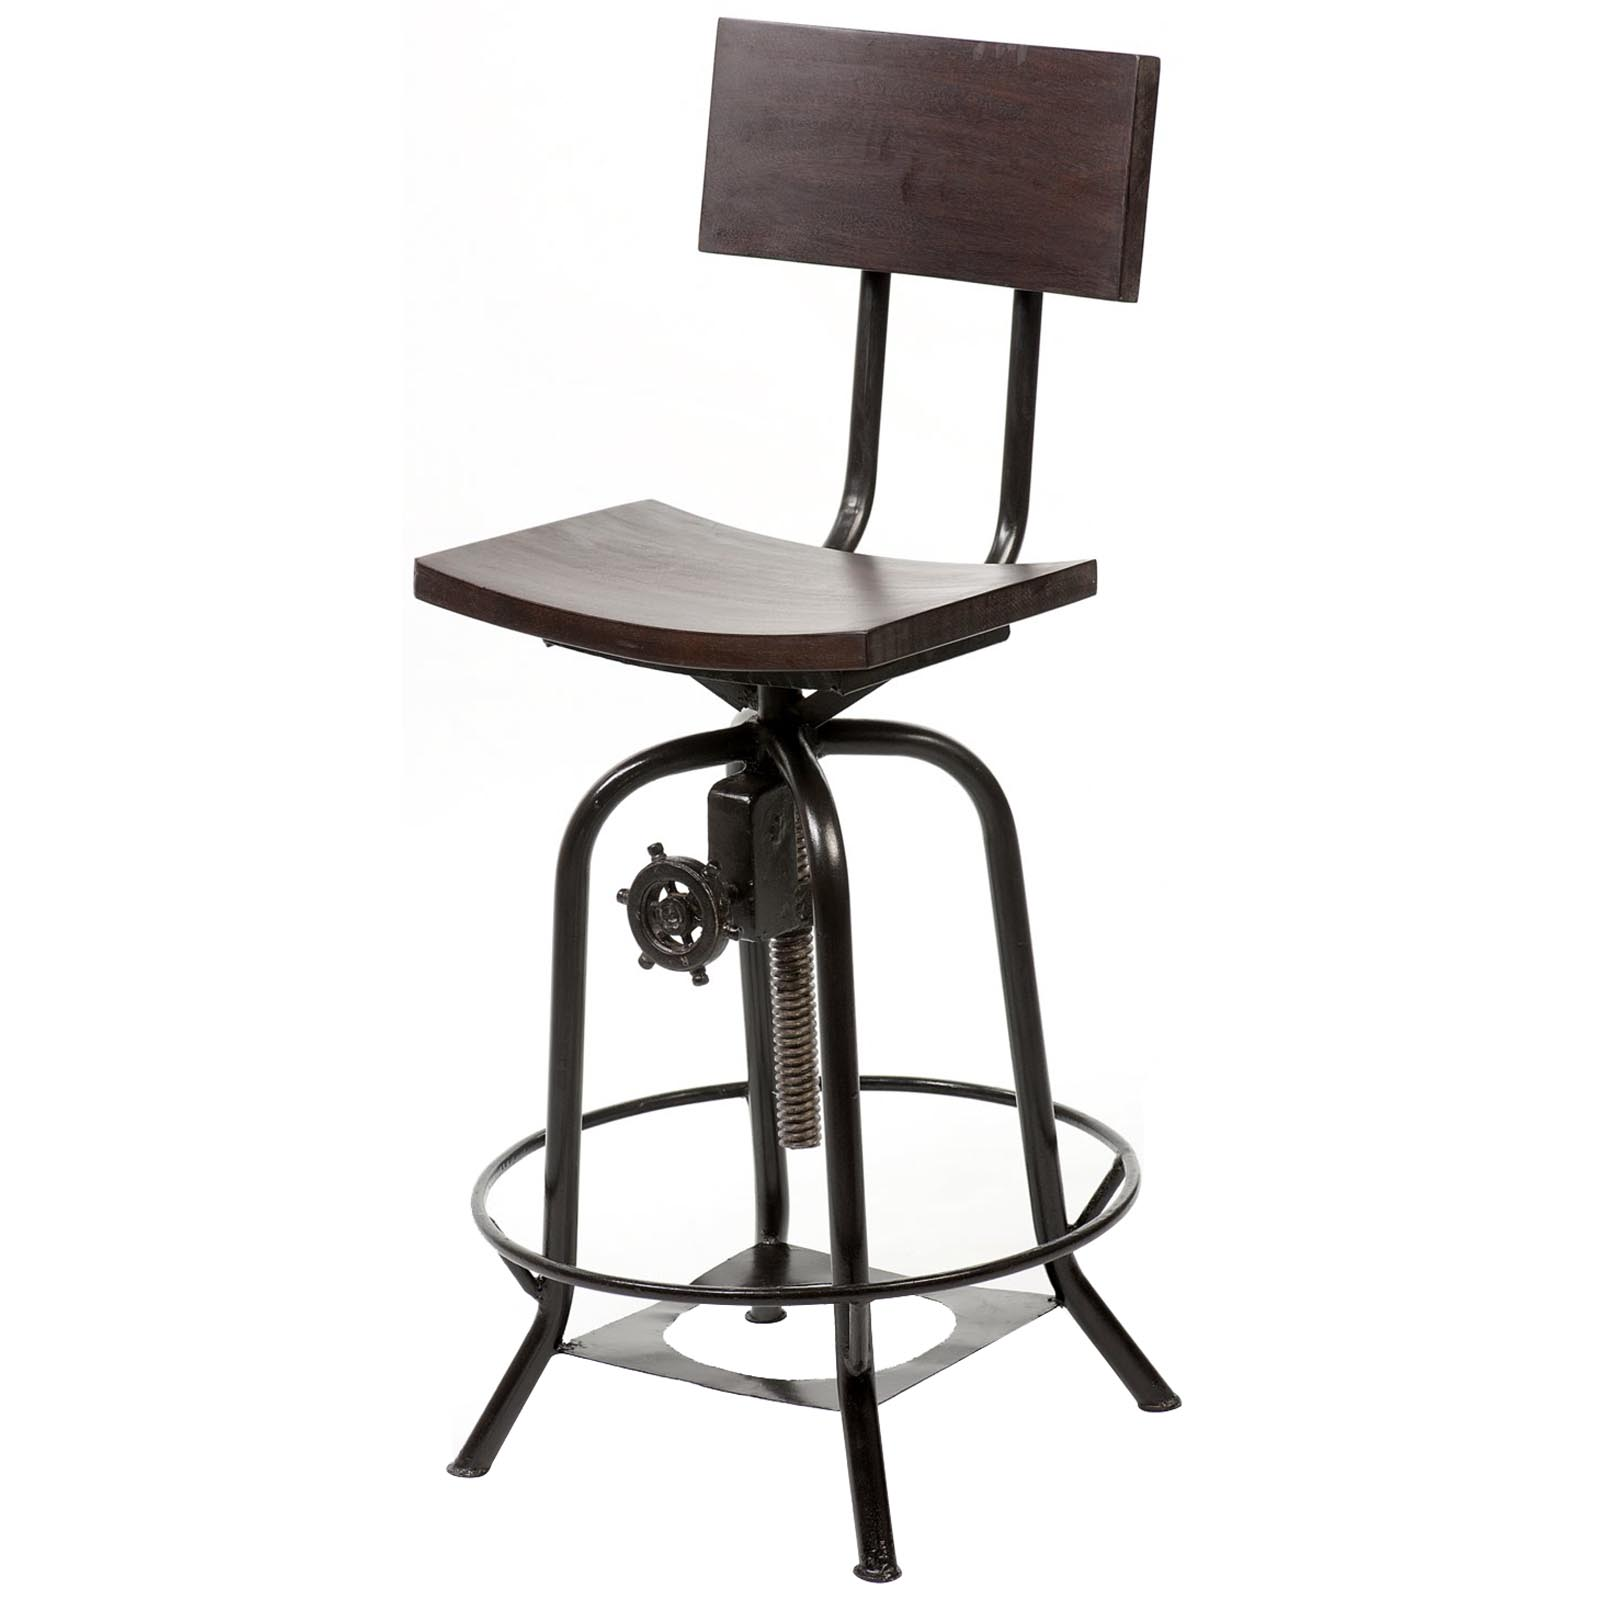 Industrial Counter Height Bar Stools Industrial Bar Stool Set Of 2 Bar Stools At Hayneedle